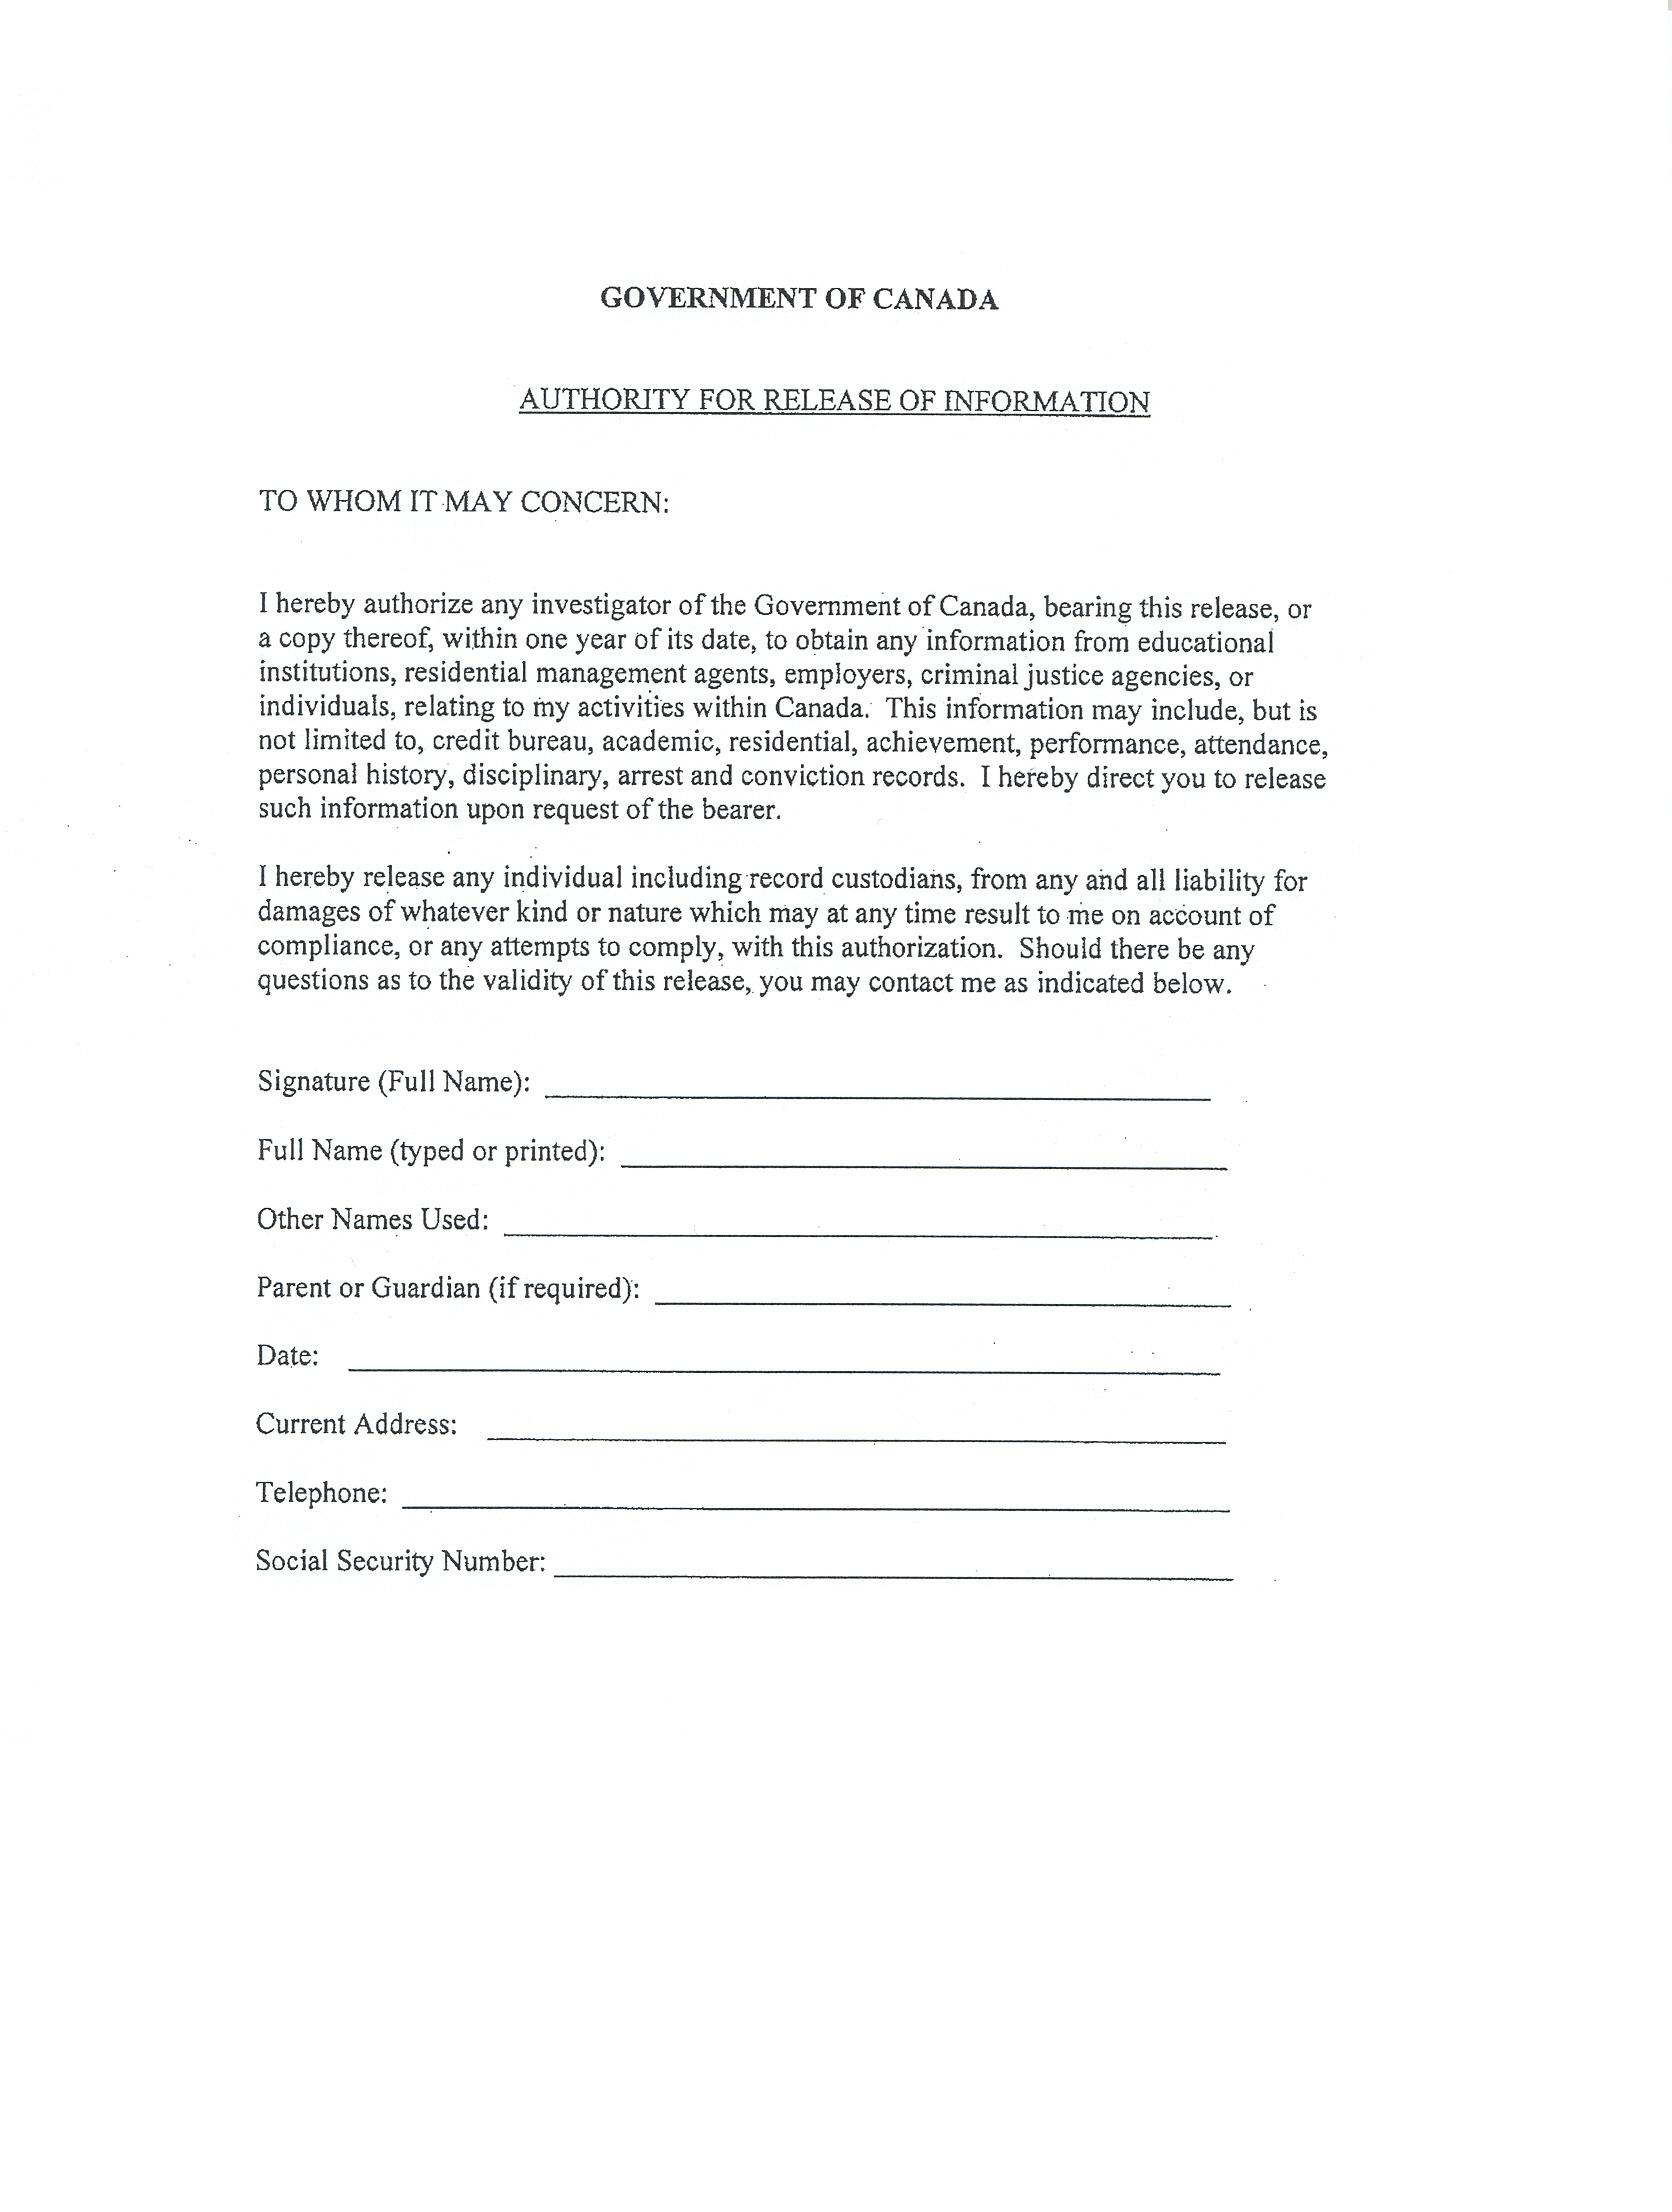 Worksheet Federal Verification Worksheet Grass Fedjp